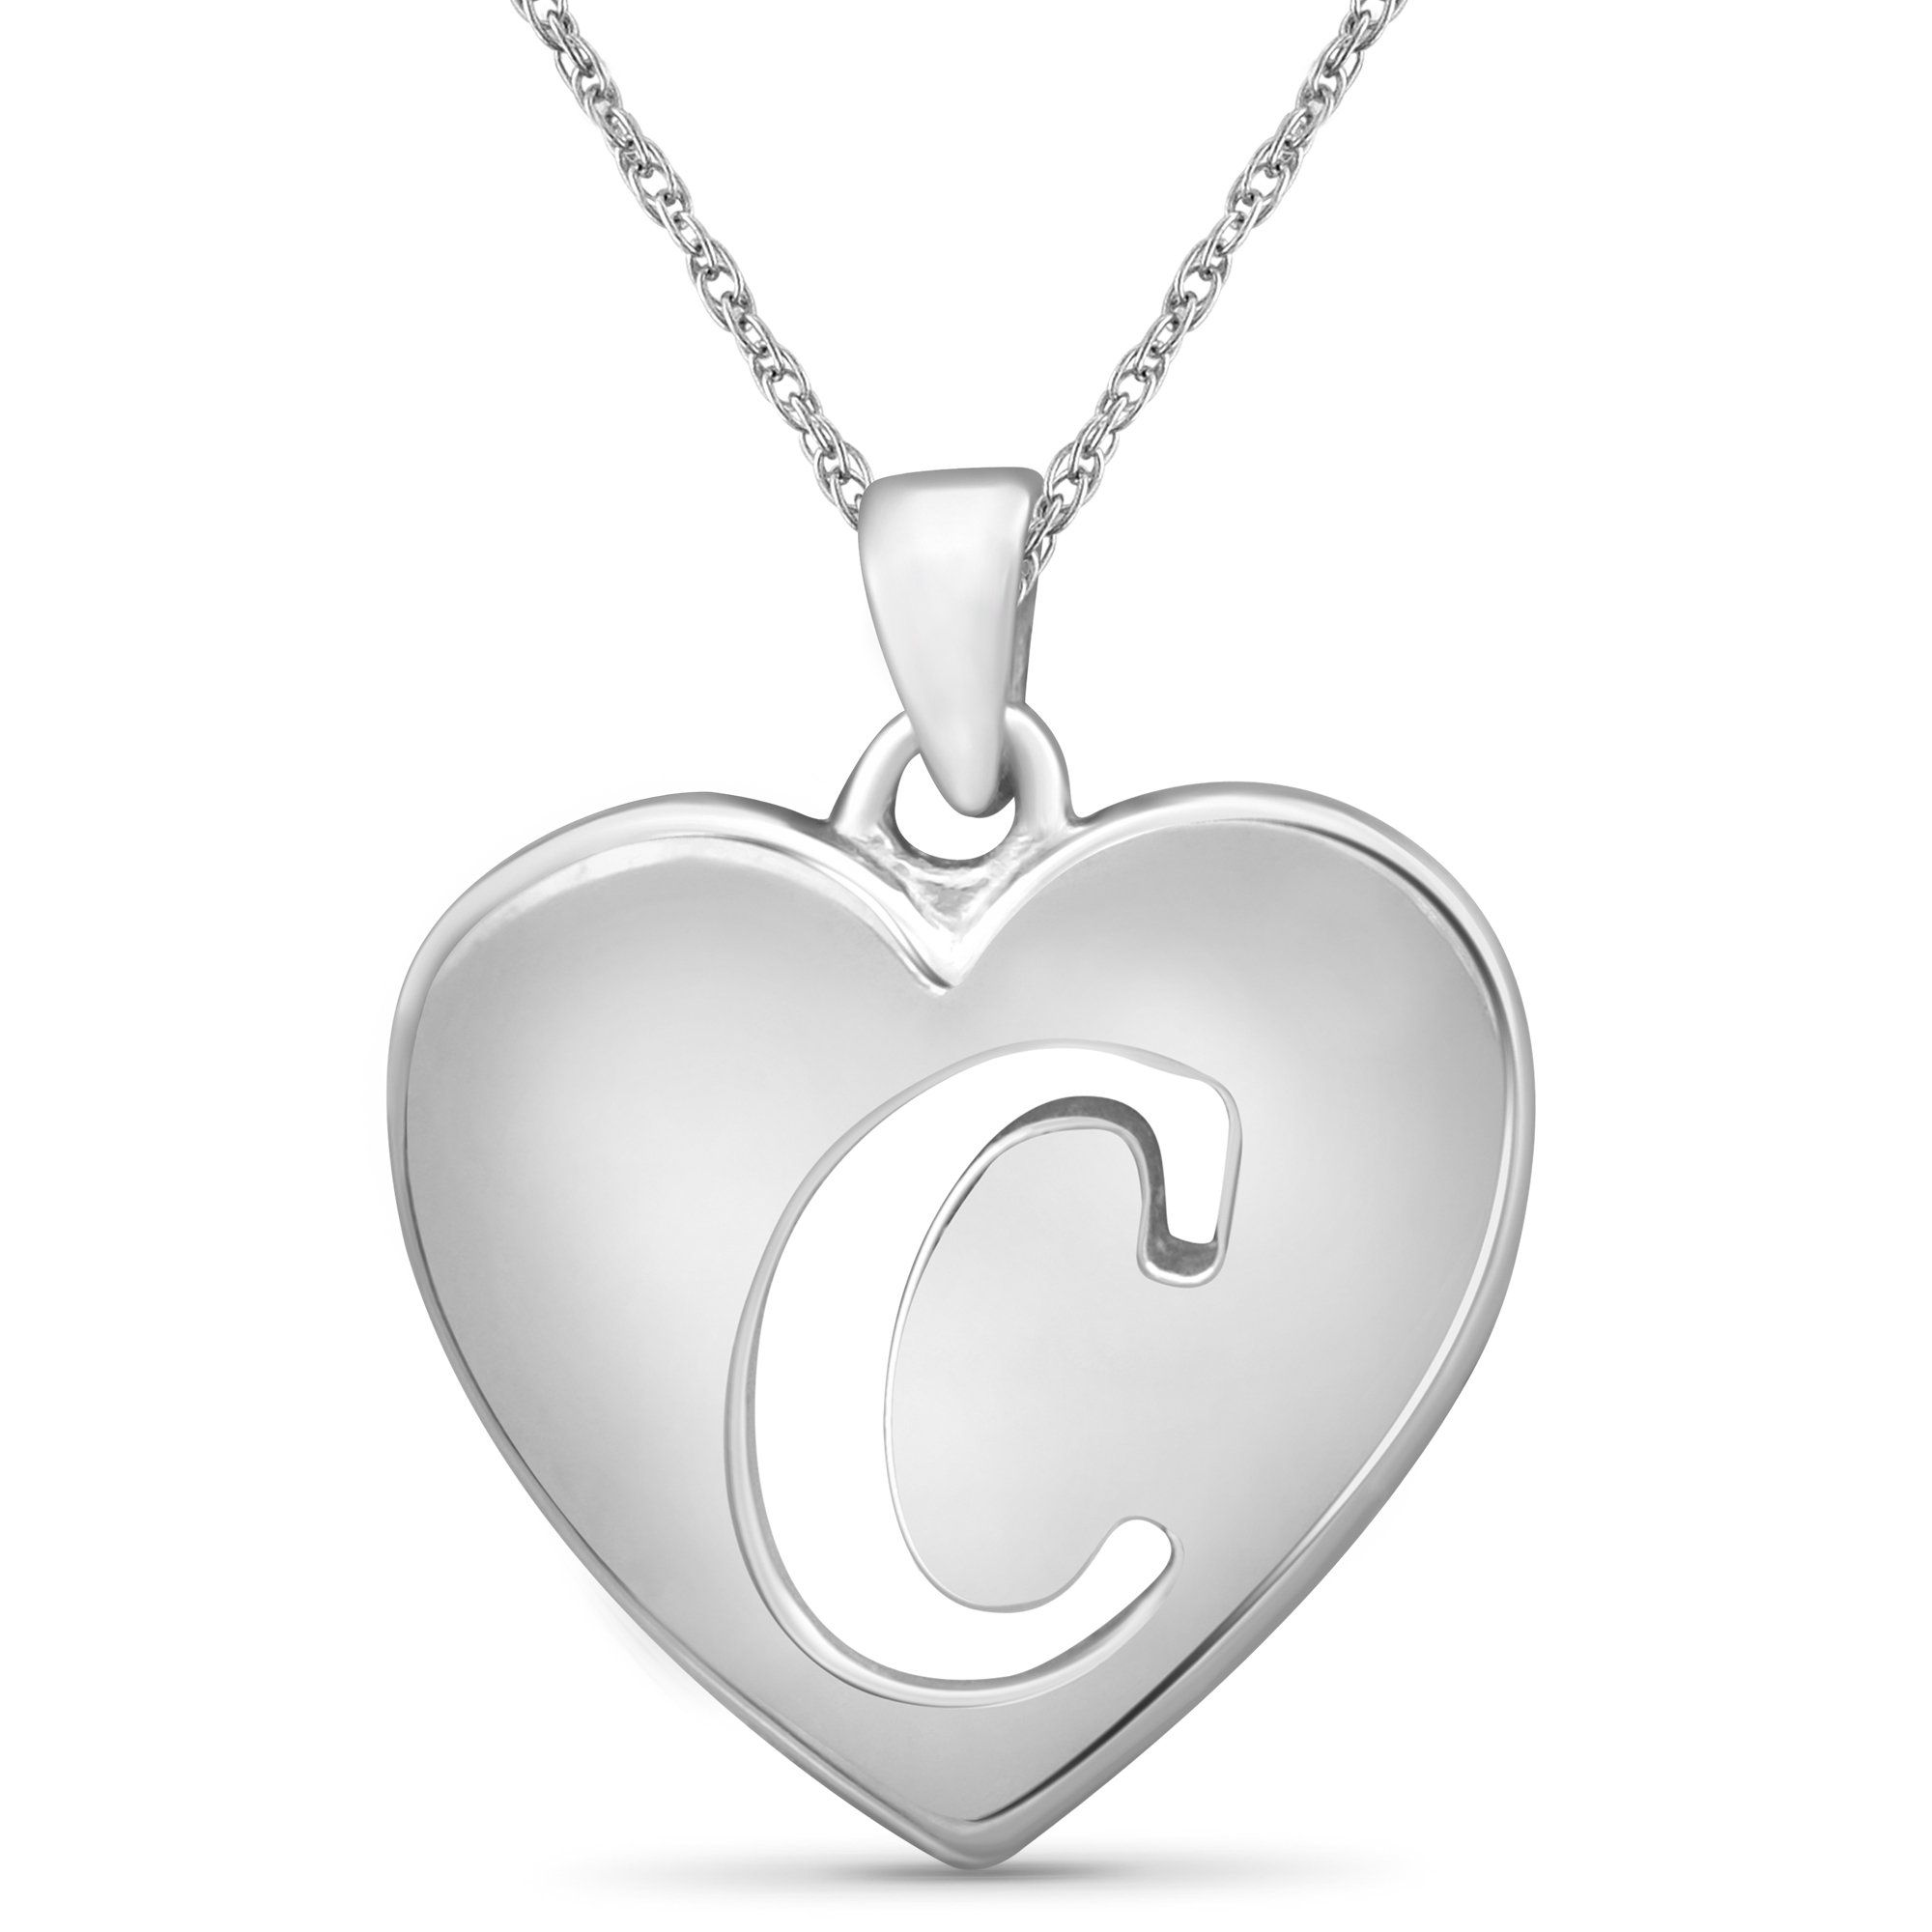 Initial Letter Pendant for Women | Customizable Sterling Silver A to Z AlphabetMonogram Necklaces for Girls | Cursive Script Capital Letters | Personalized Jewelry Gift for Her – C